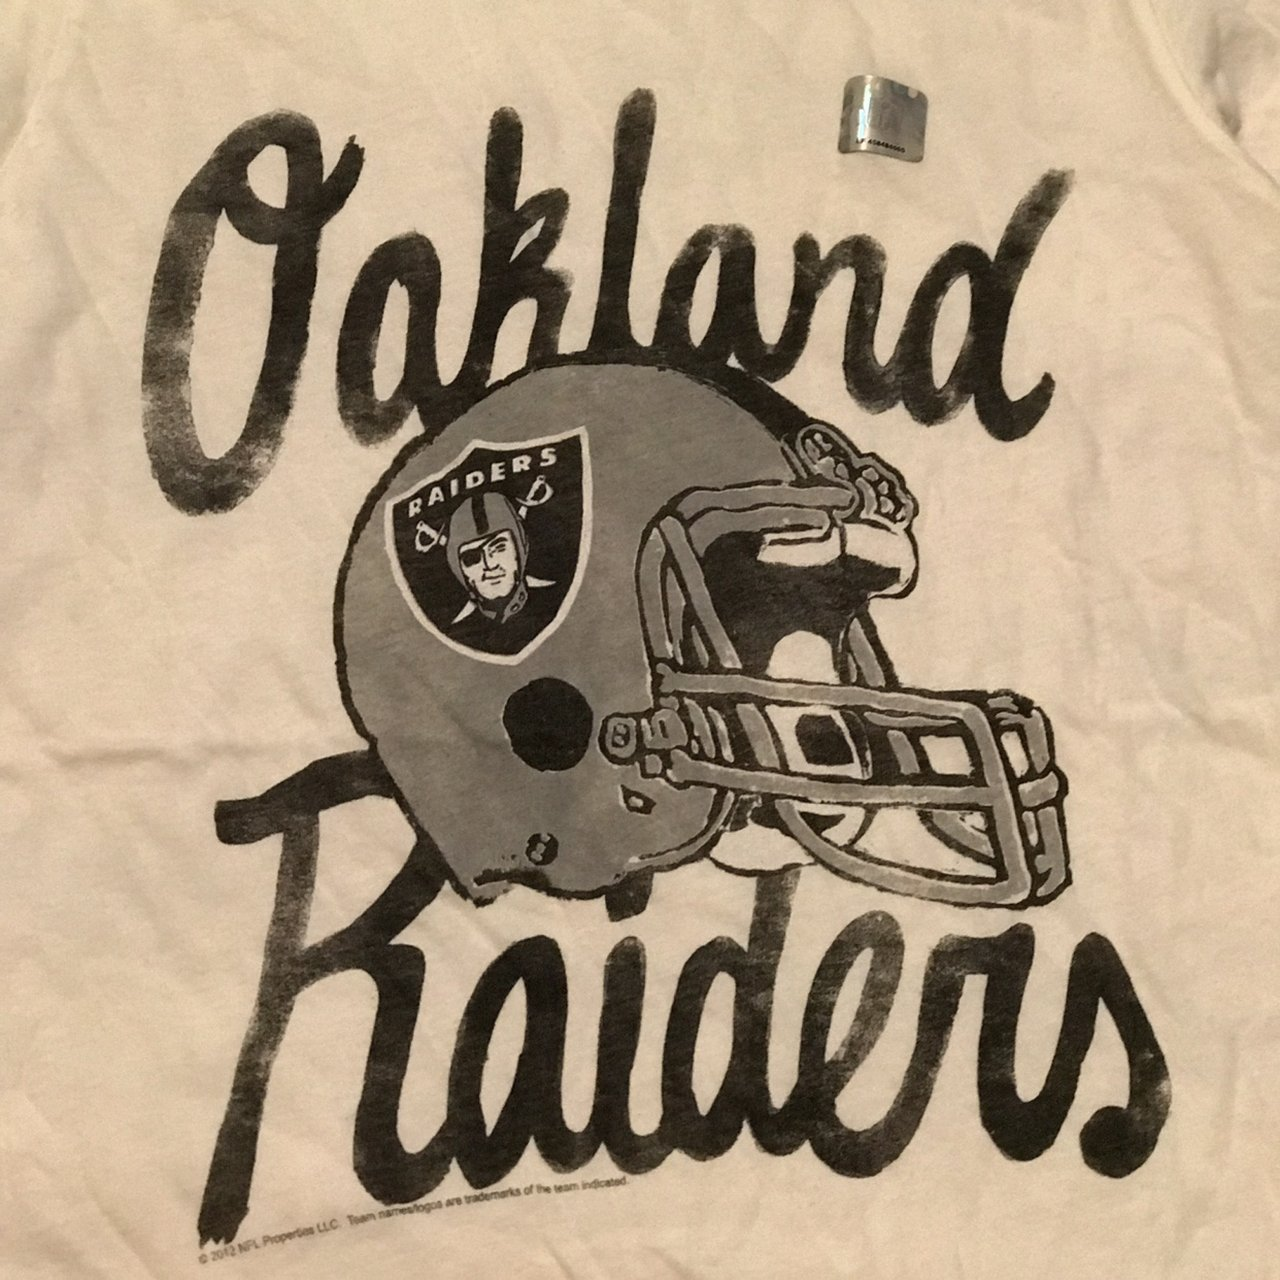 Nfl Oakland Raiders By Junkfood Clothing Size Medium Cream Depop